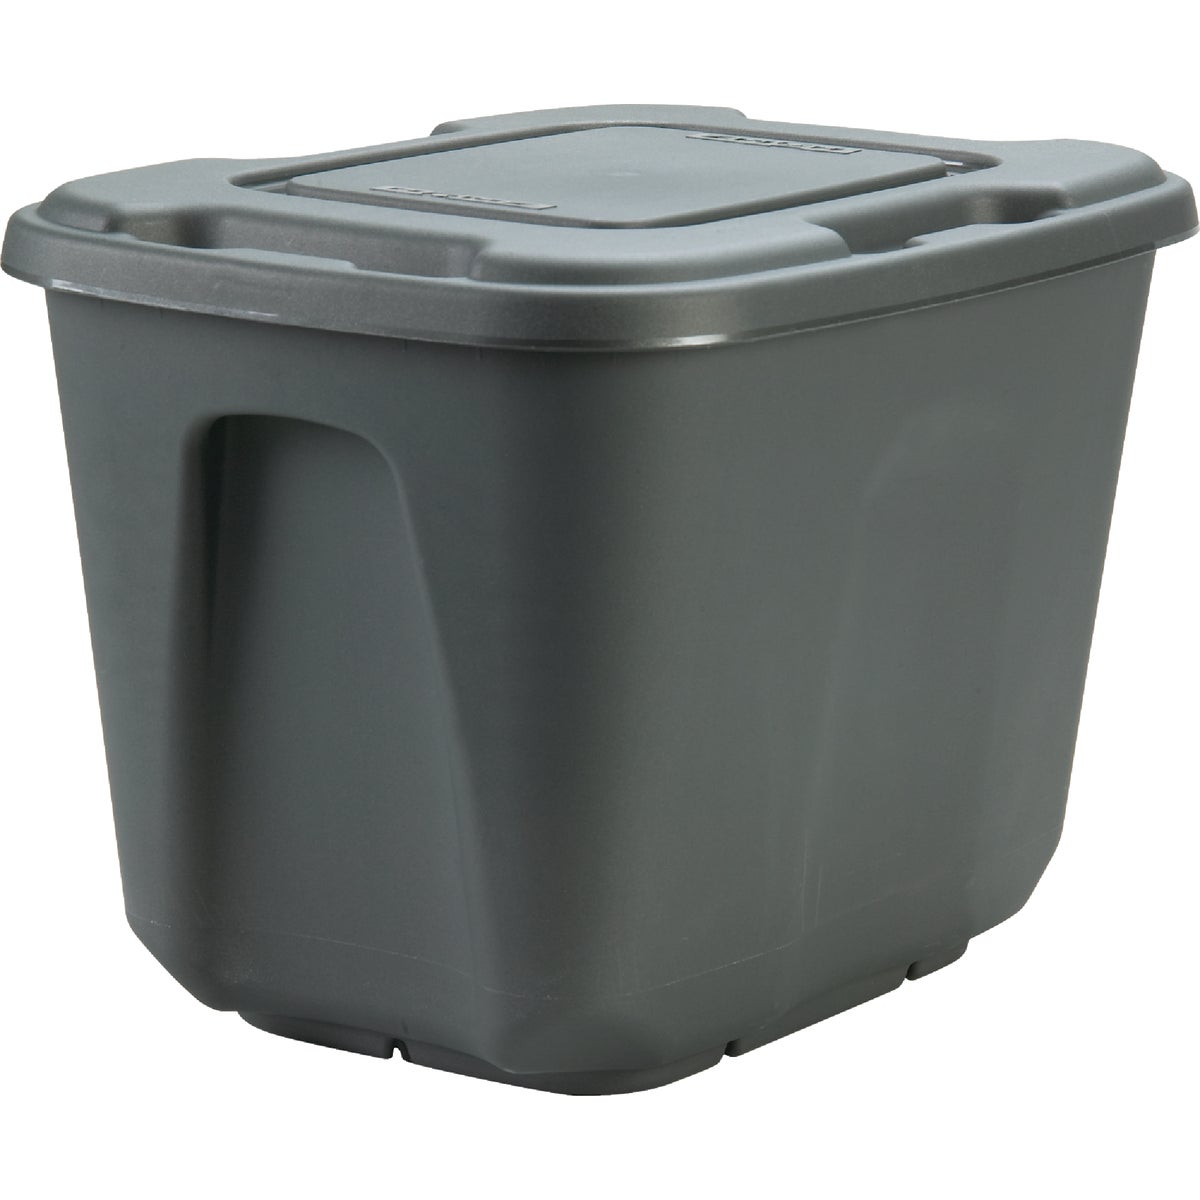 10 GALLON TOTE BOX - 6510RMC.10 by Homz/ Tamor